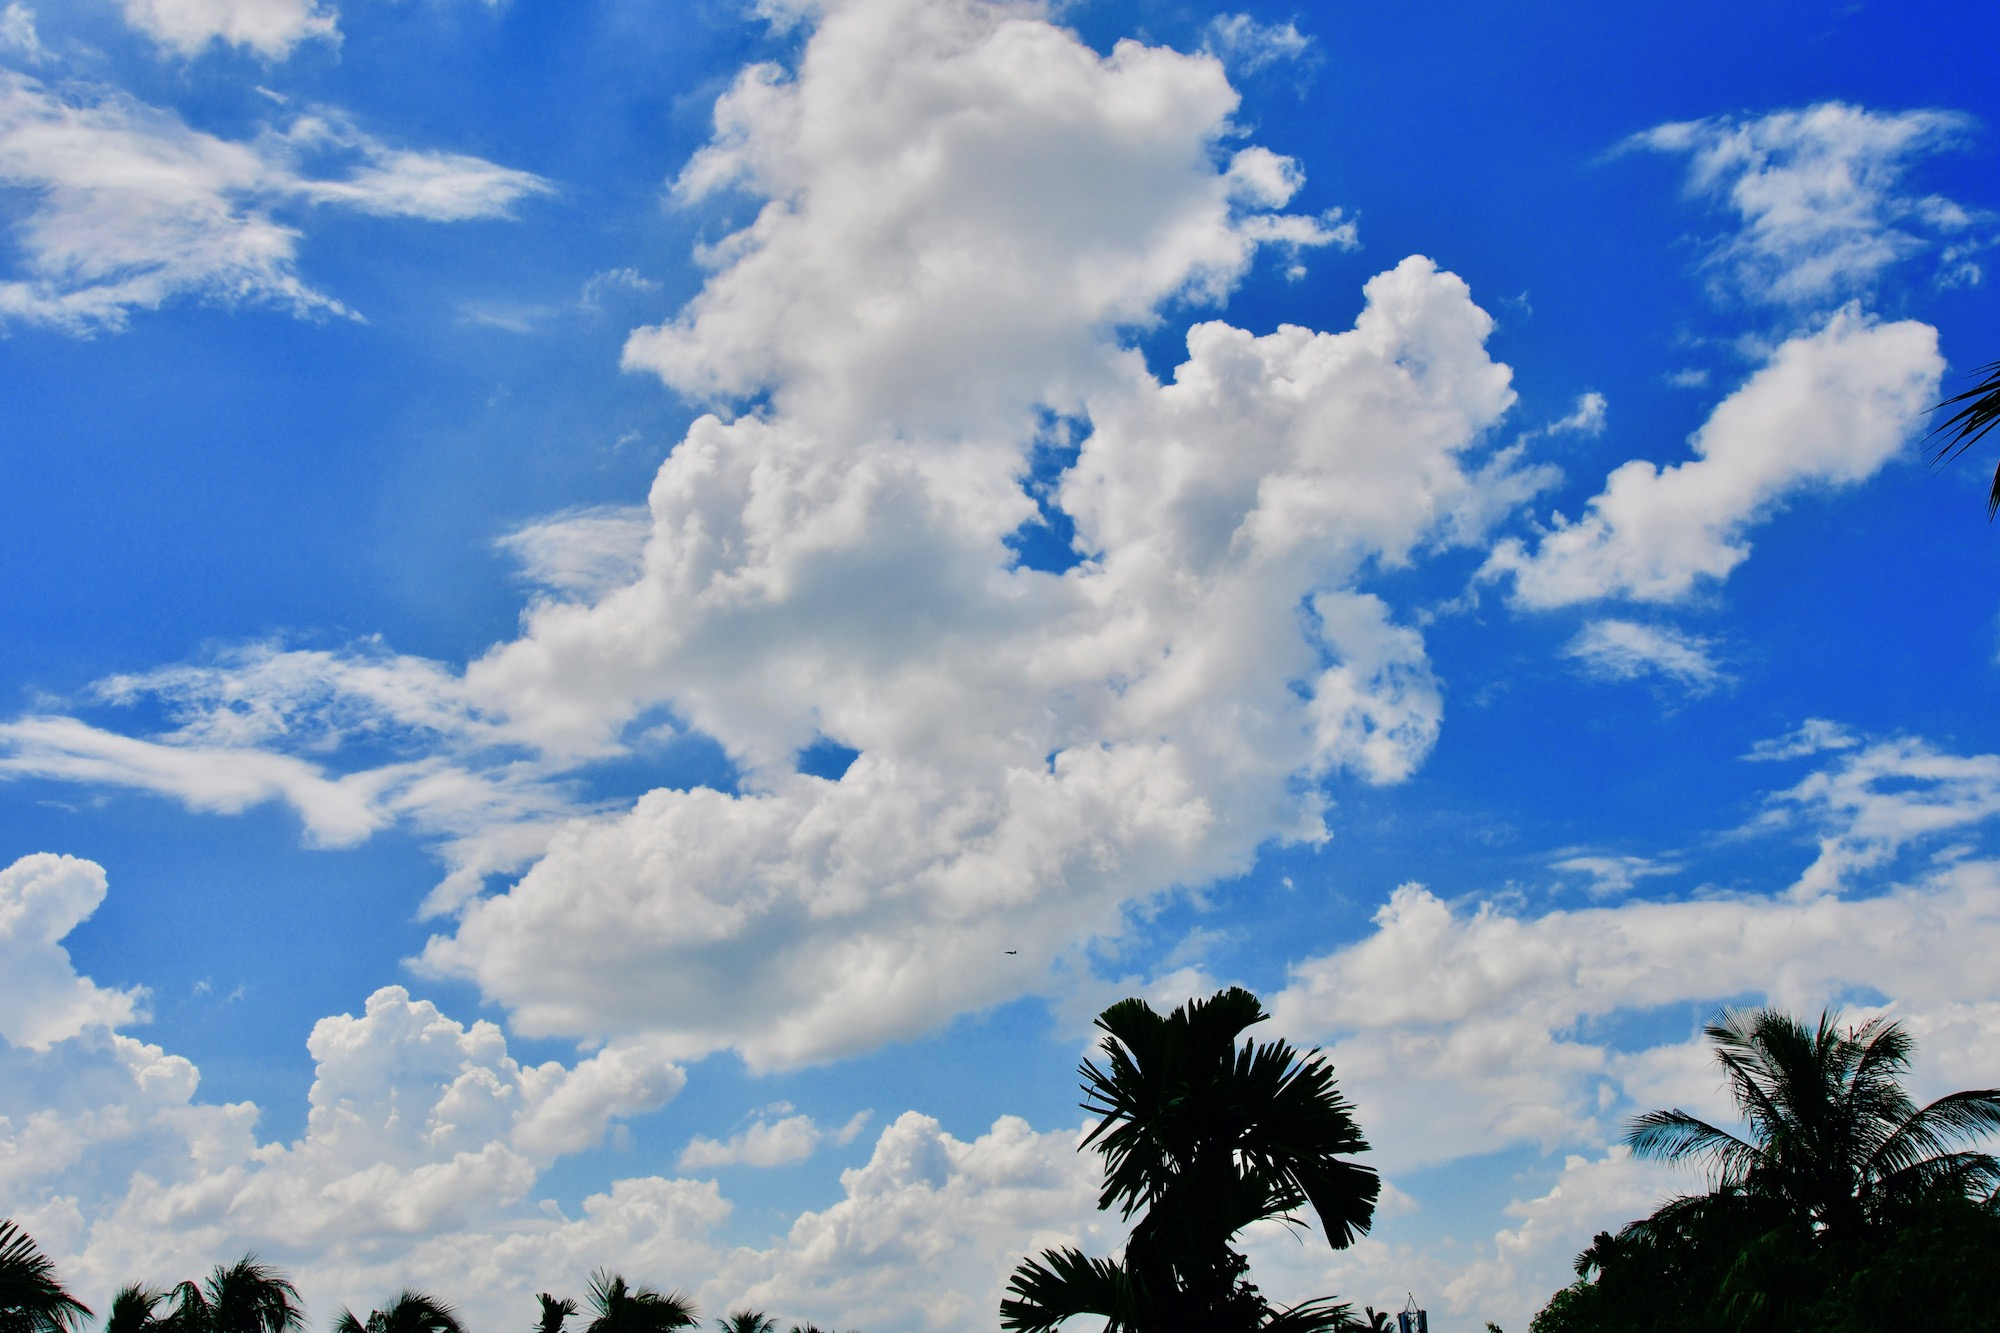 During full monsoon I have taken this formation of cloud from the roof of my house.